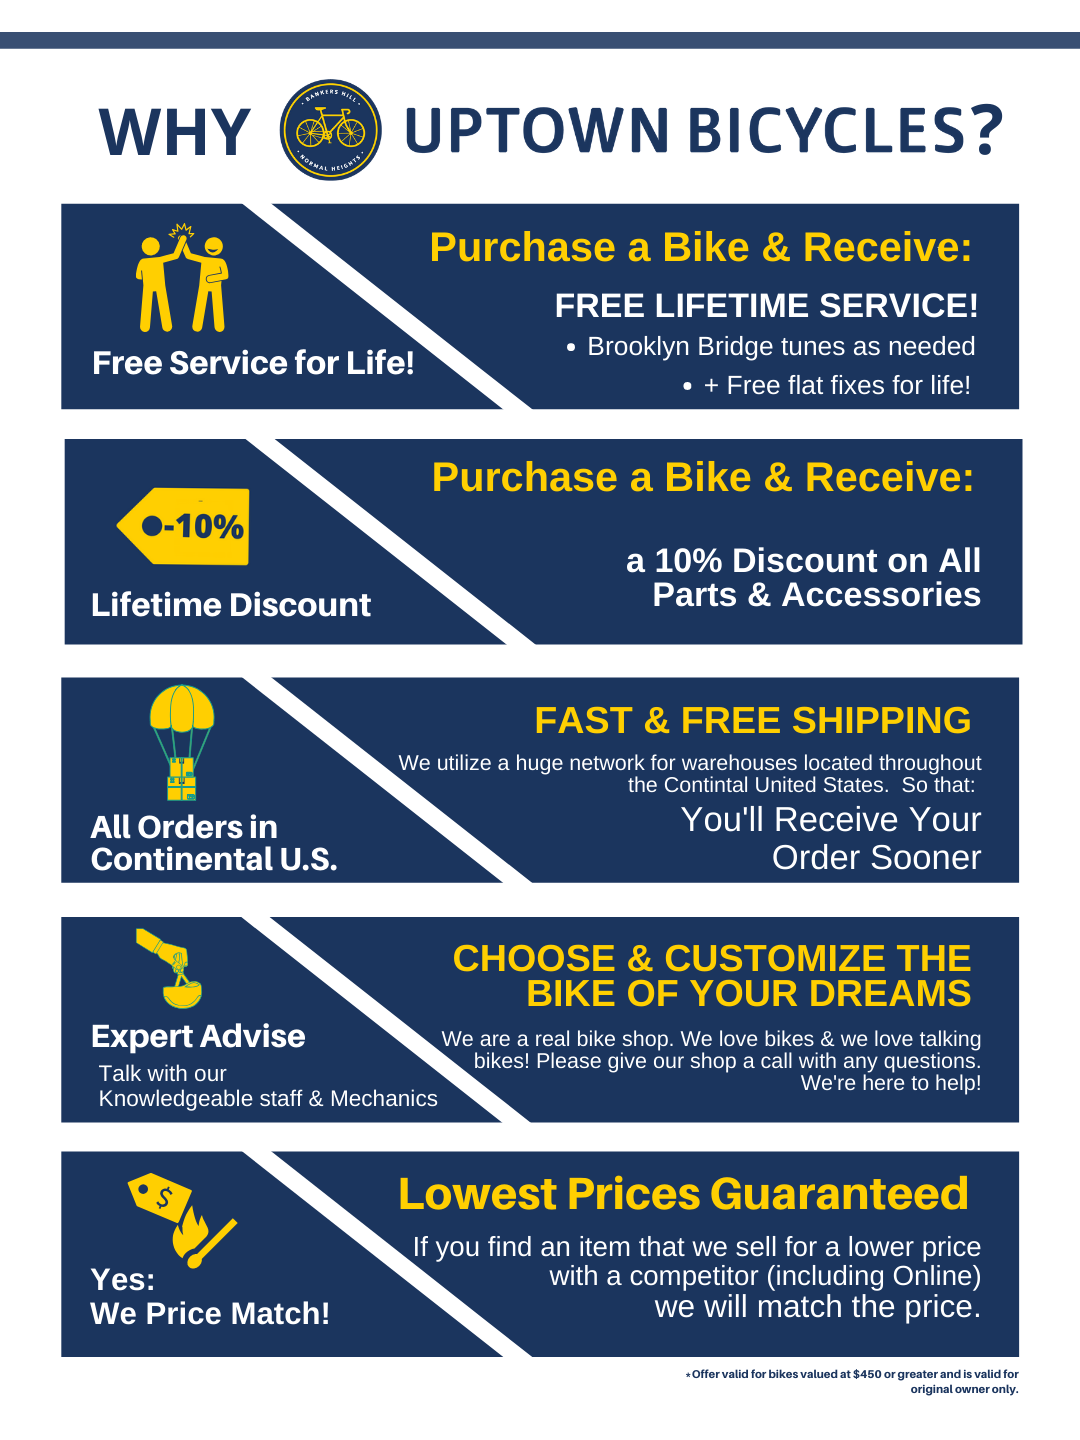 Why Uptown Bicycles?